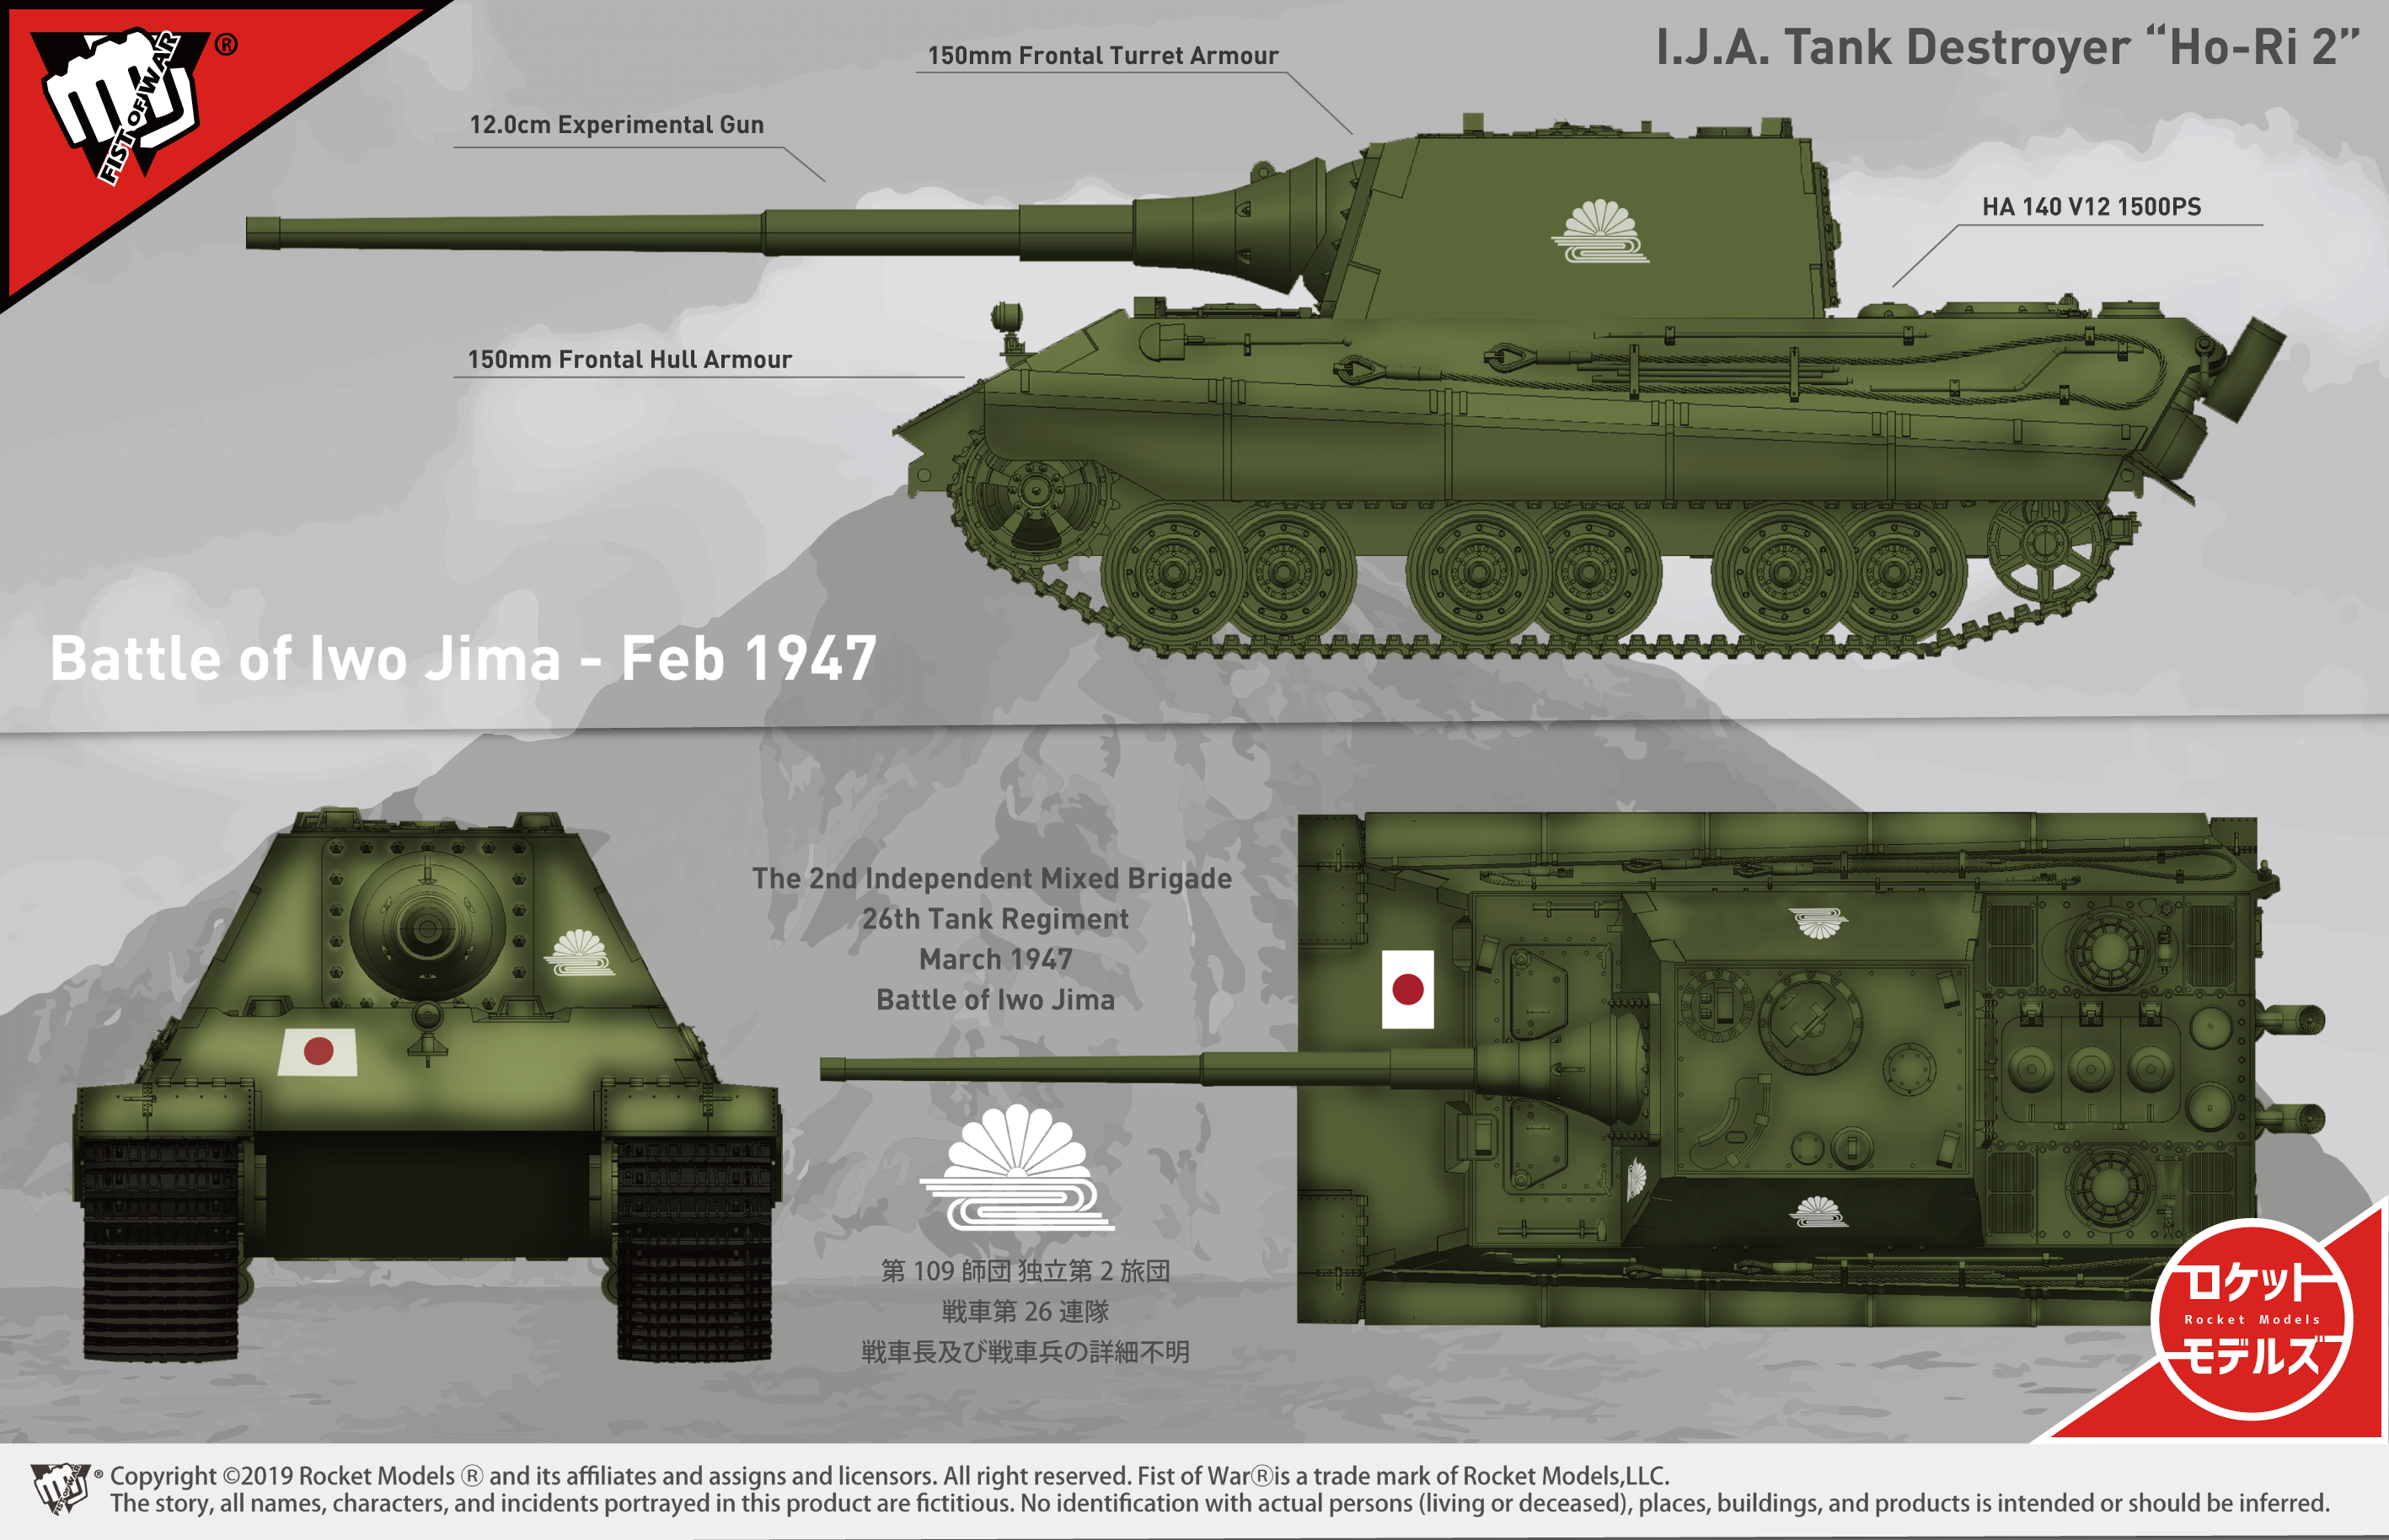 47027-HORI2-side-view-page